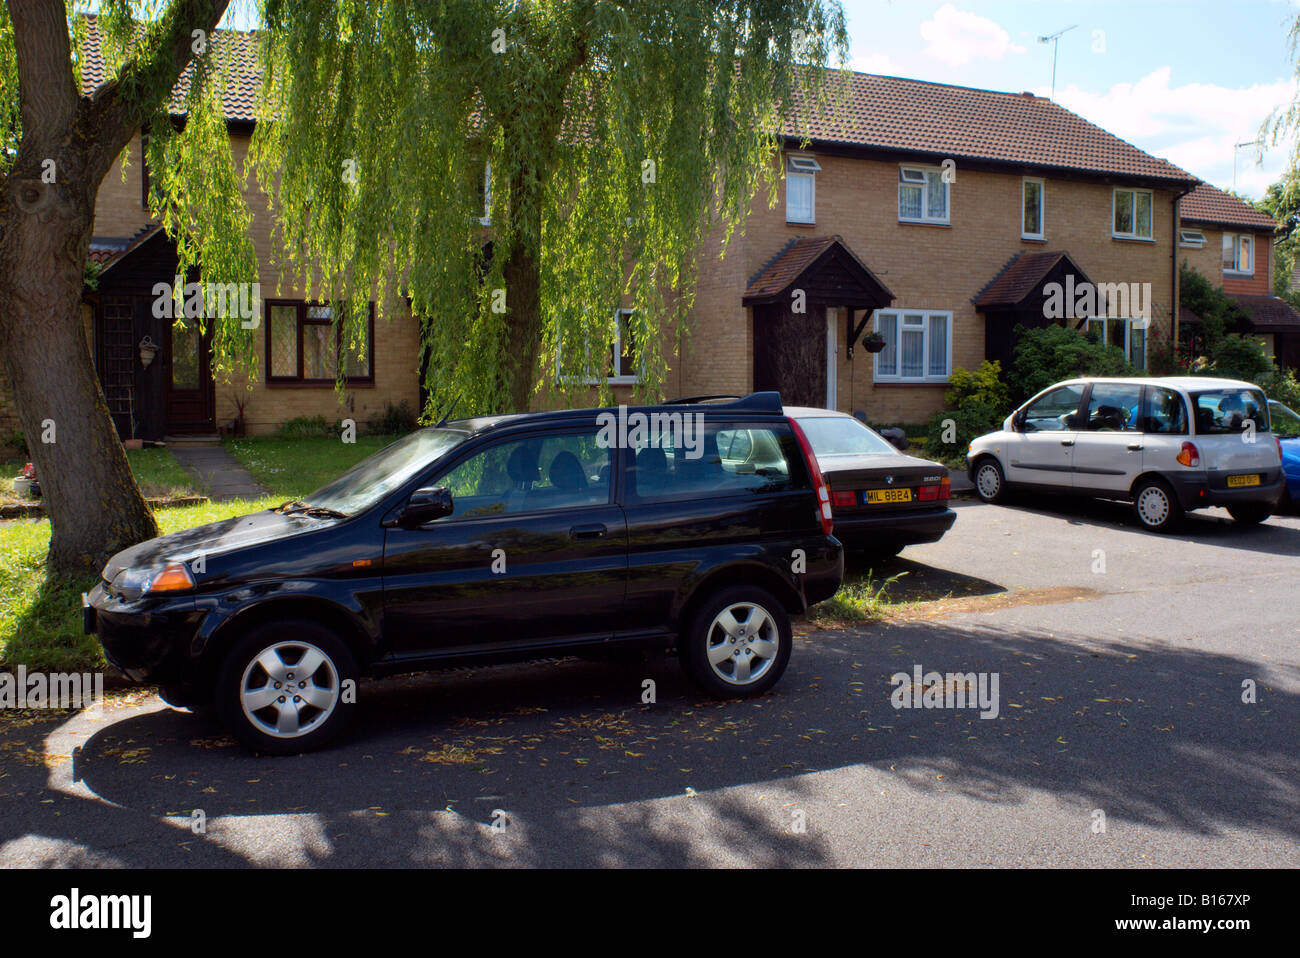 Ordinary suburban scene in Goldsworth Park Woking Surrey England with parked cars and willow tree - Stock Image